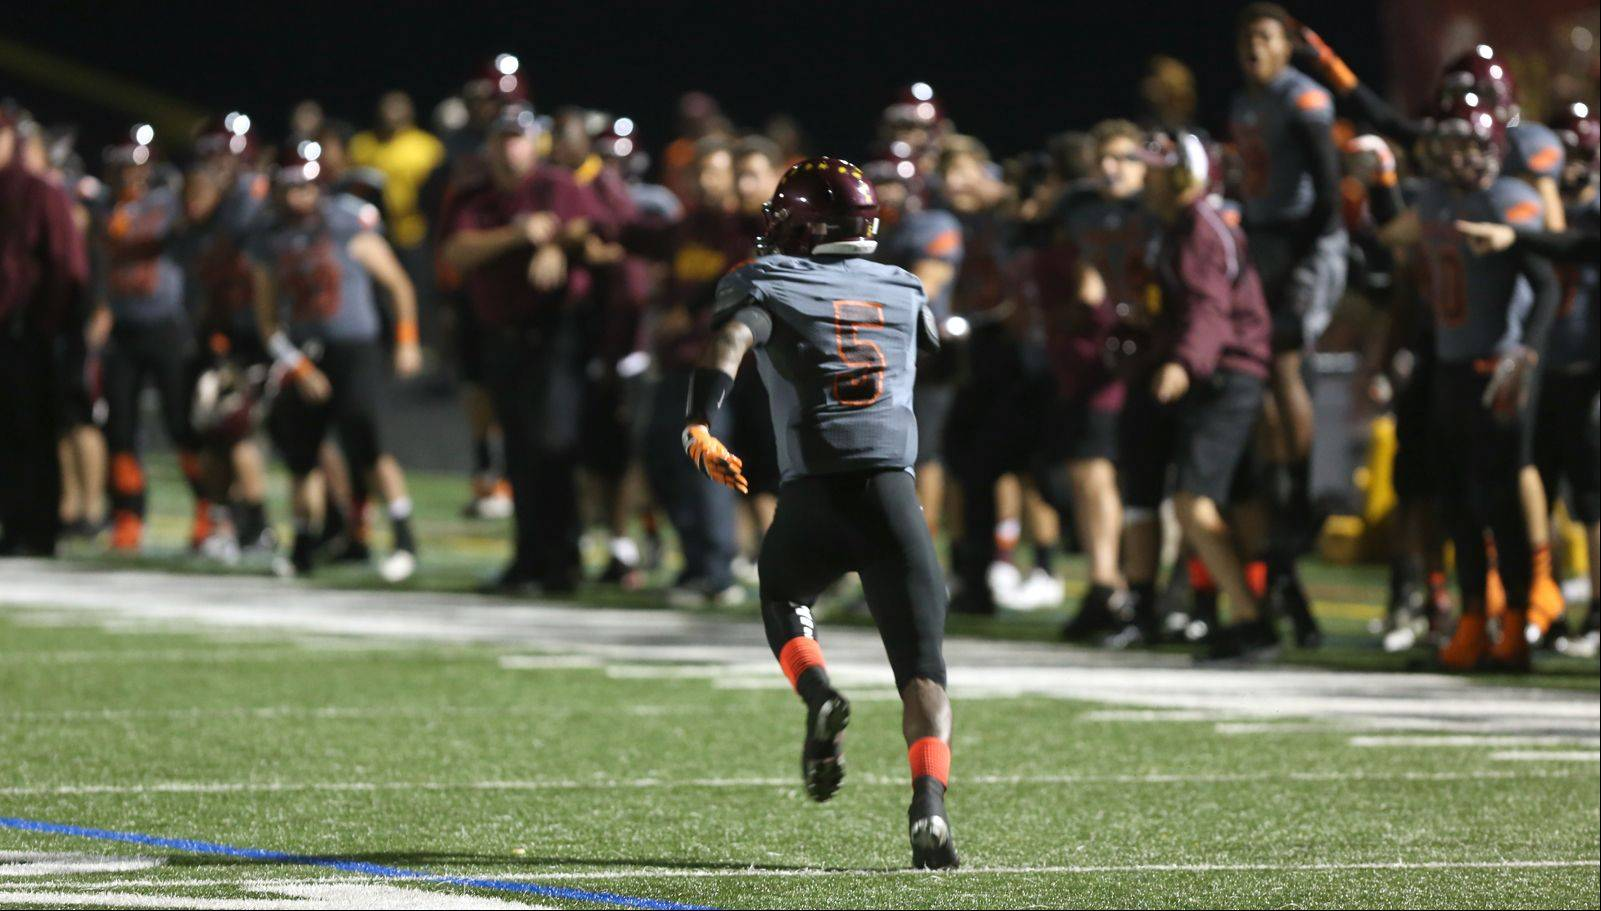 Montini's Derrick Curry picks off a St. Francis pass for a 92-yard touchdown run.